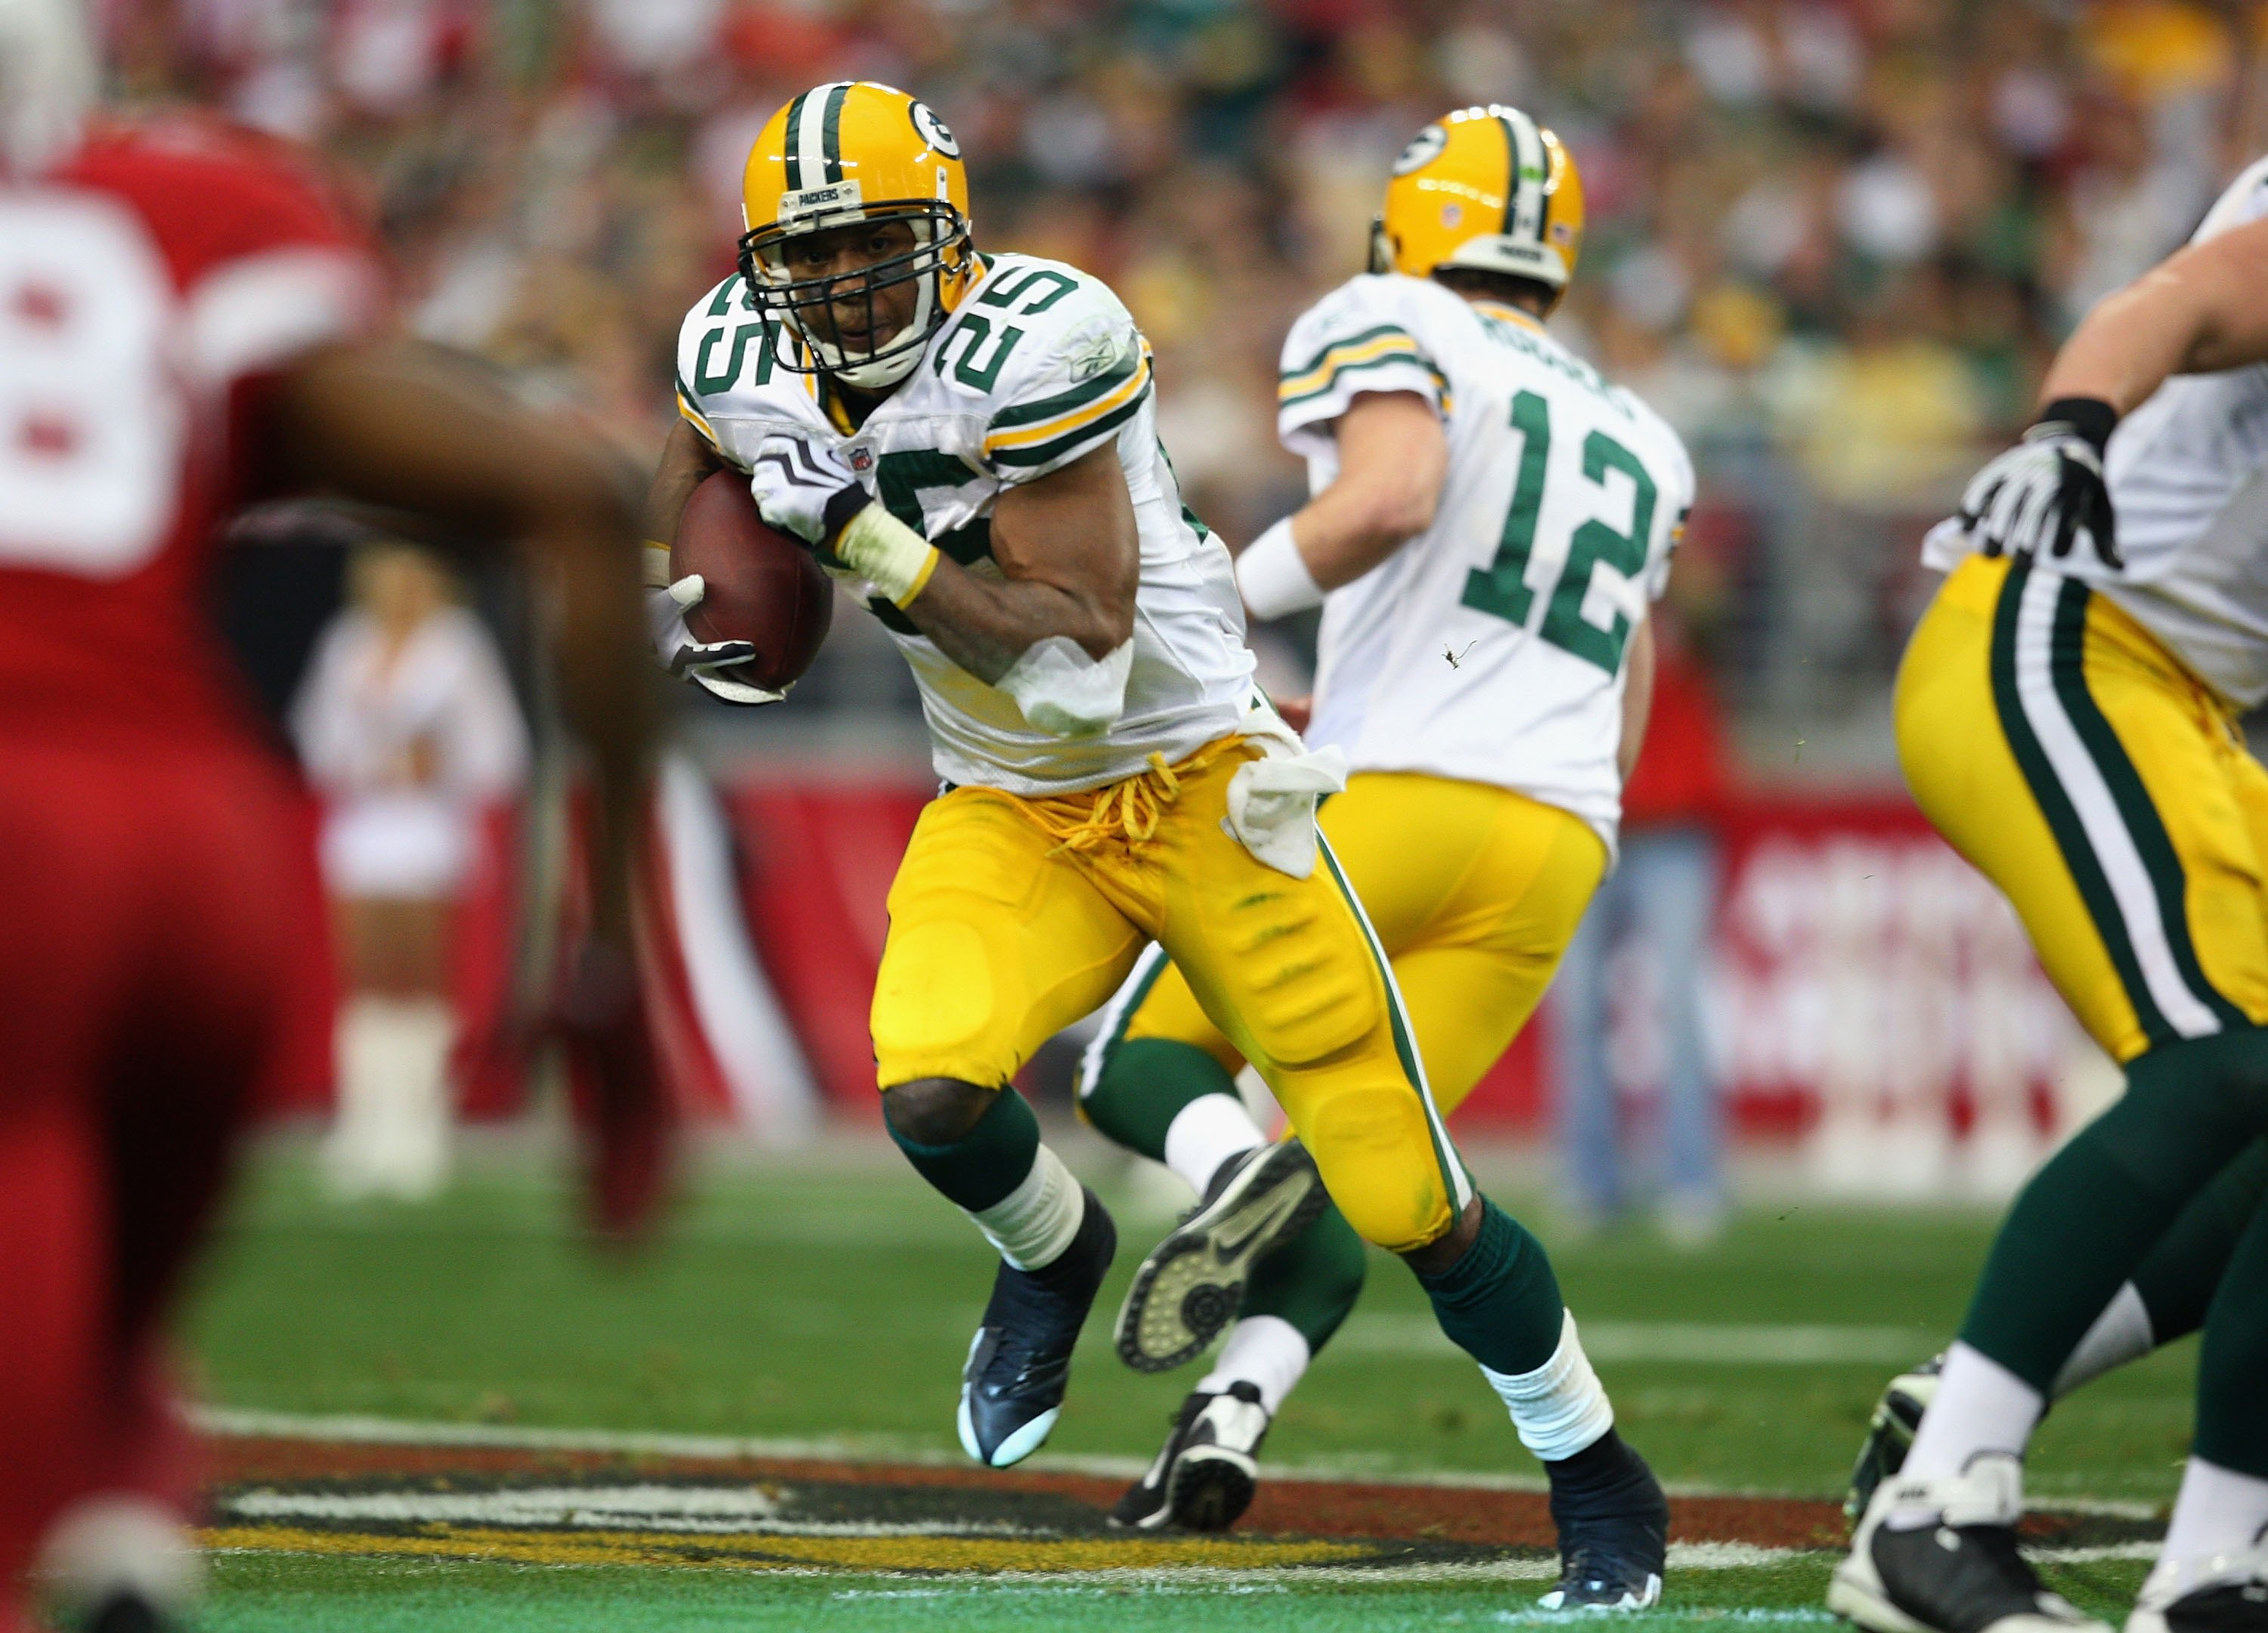 GLENDALE, AZ - JANUARY 03:  Runningback Ryan Grant #25 of the Green Bay Packers runs with the ball during the NFL game against the Arizona Cardinals at the Universtity of Phoenix Stadium on January 3, 2010 in Glendale, Arizona.  The Packers defeated the C